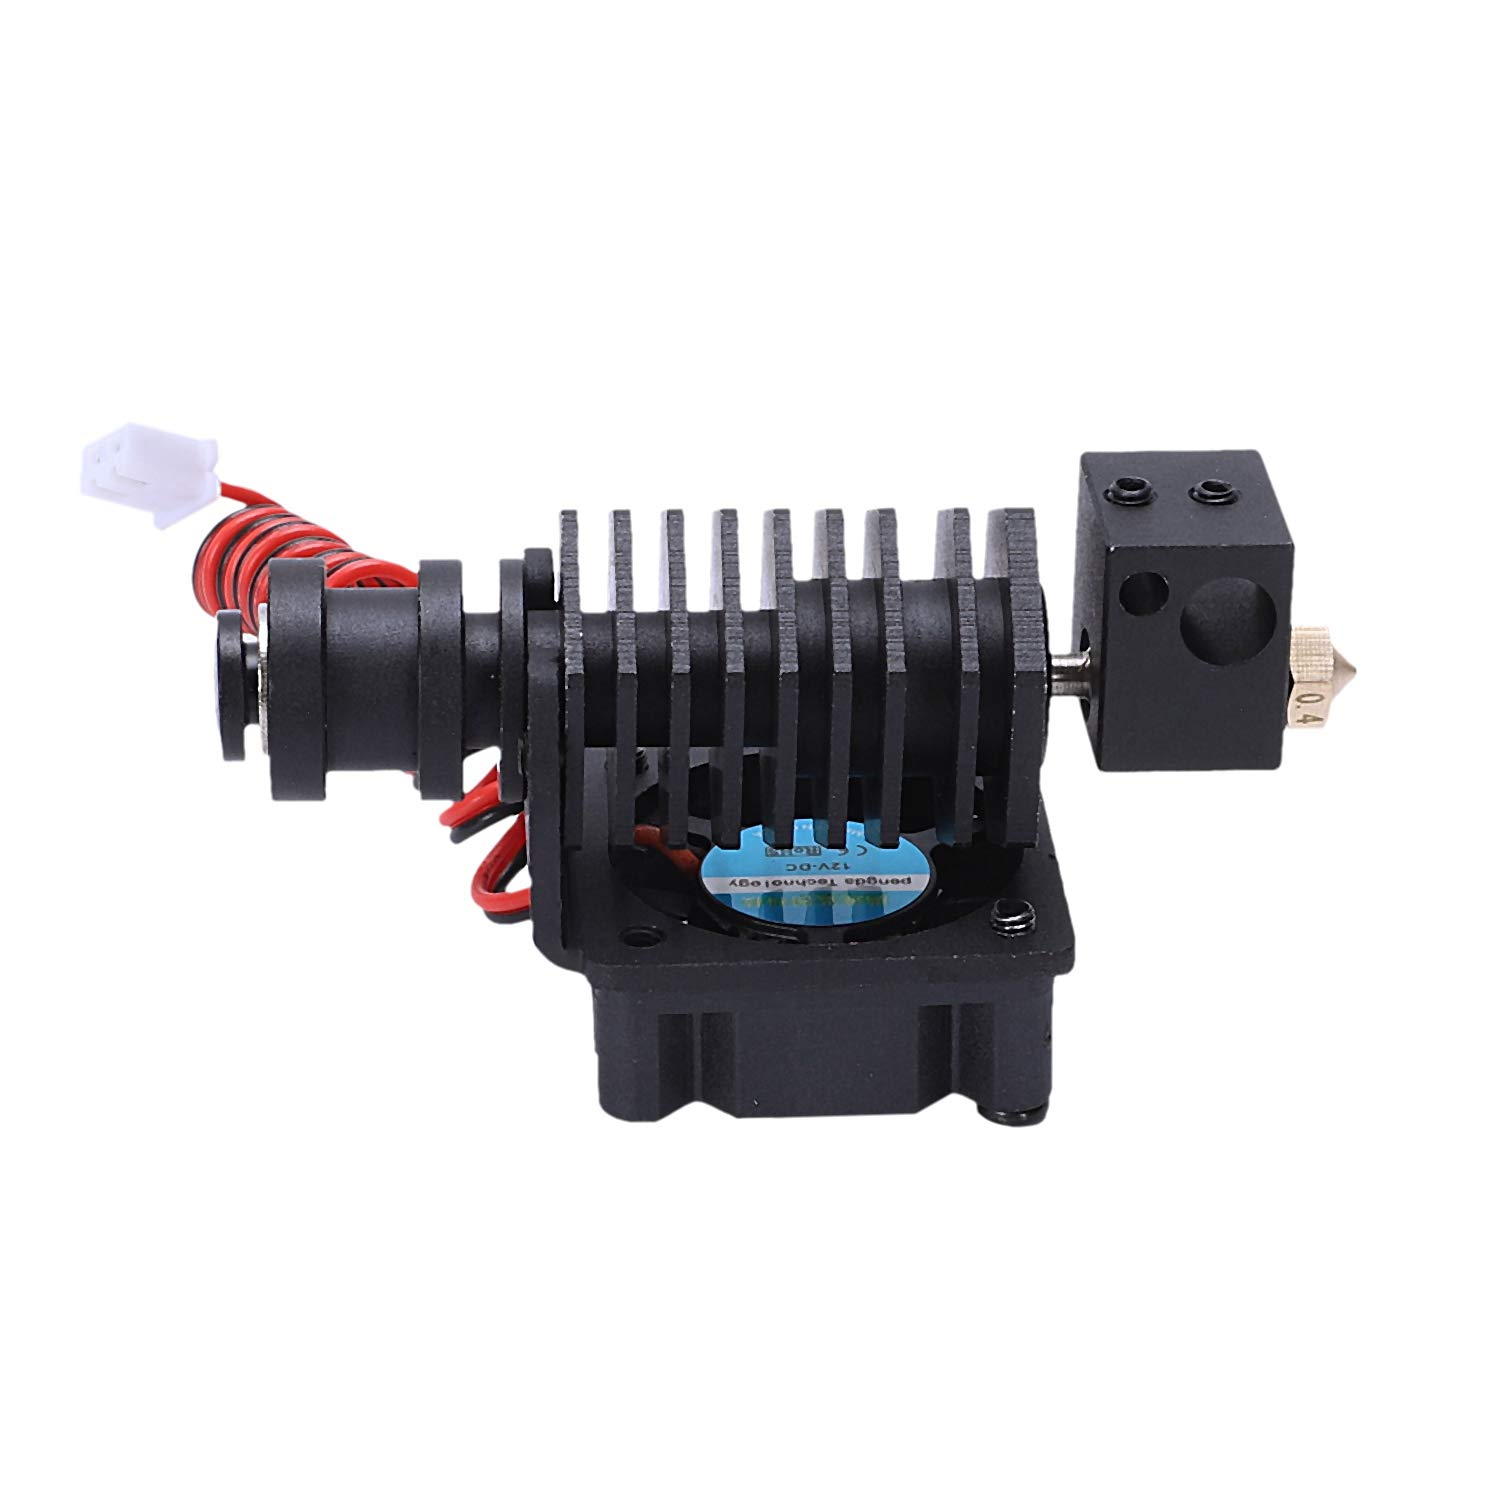 XZANTE Impresora 3D Bp6 Hotend Kit J: Amazon.es: Electrónica